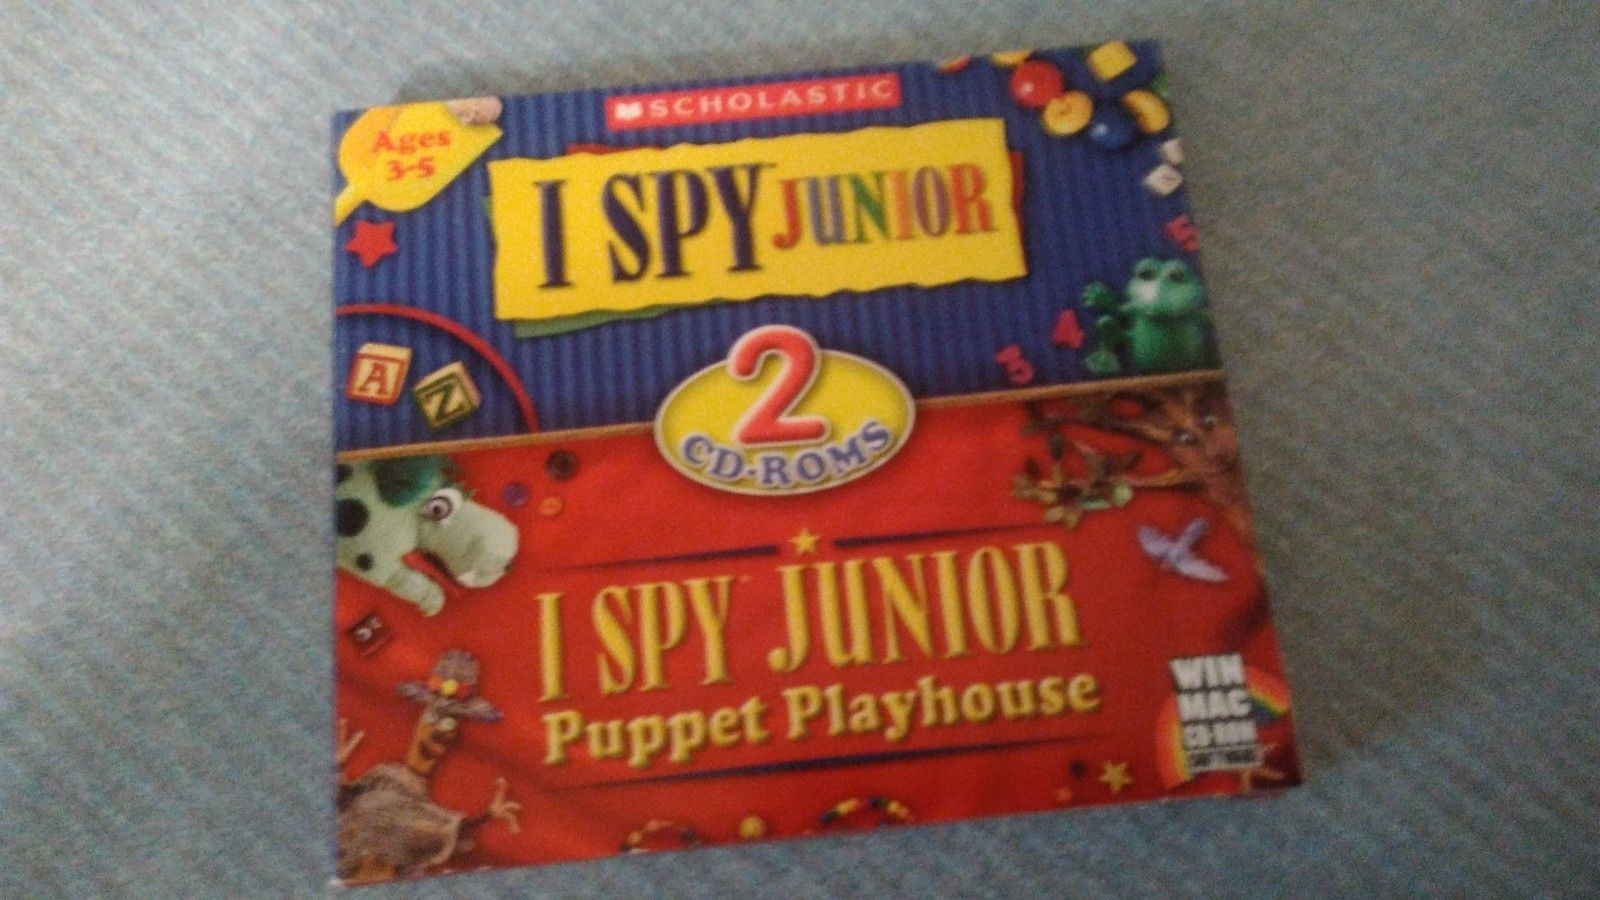 I spy junior puppet playhouse pack for mac and 50 similar items i spy junior puppet playhouse pack for mac m4hsunfo